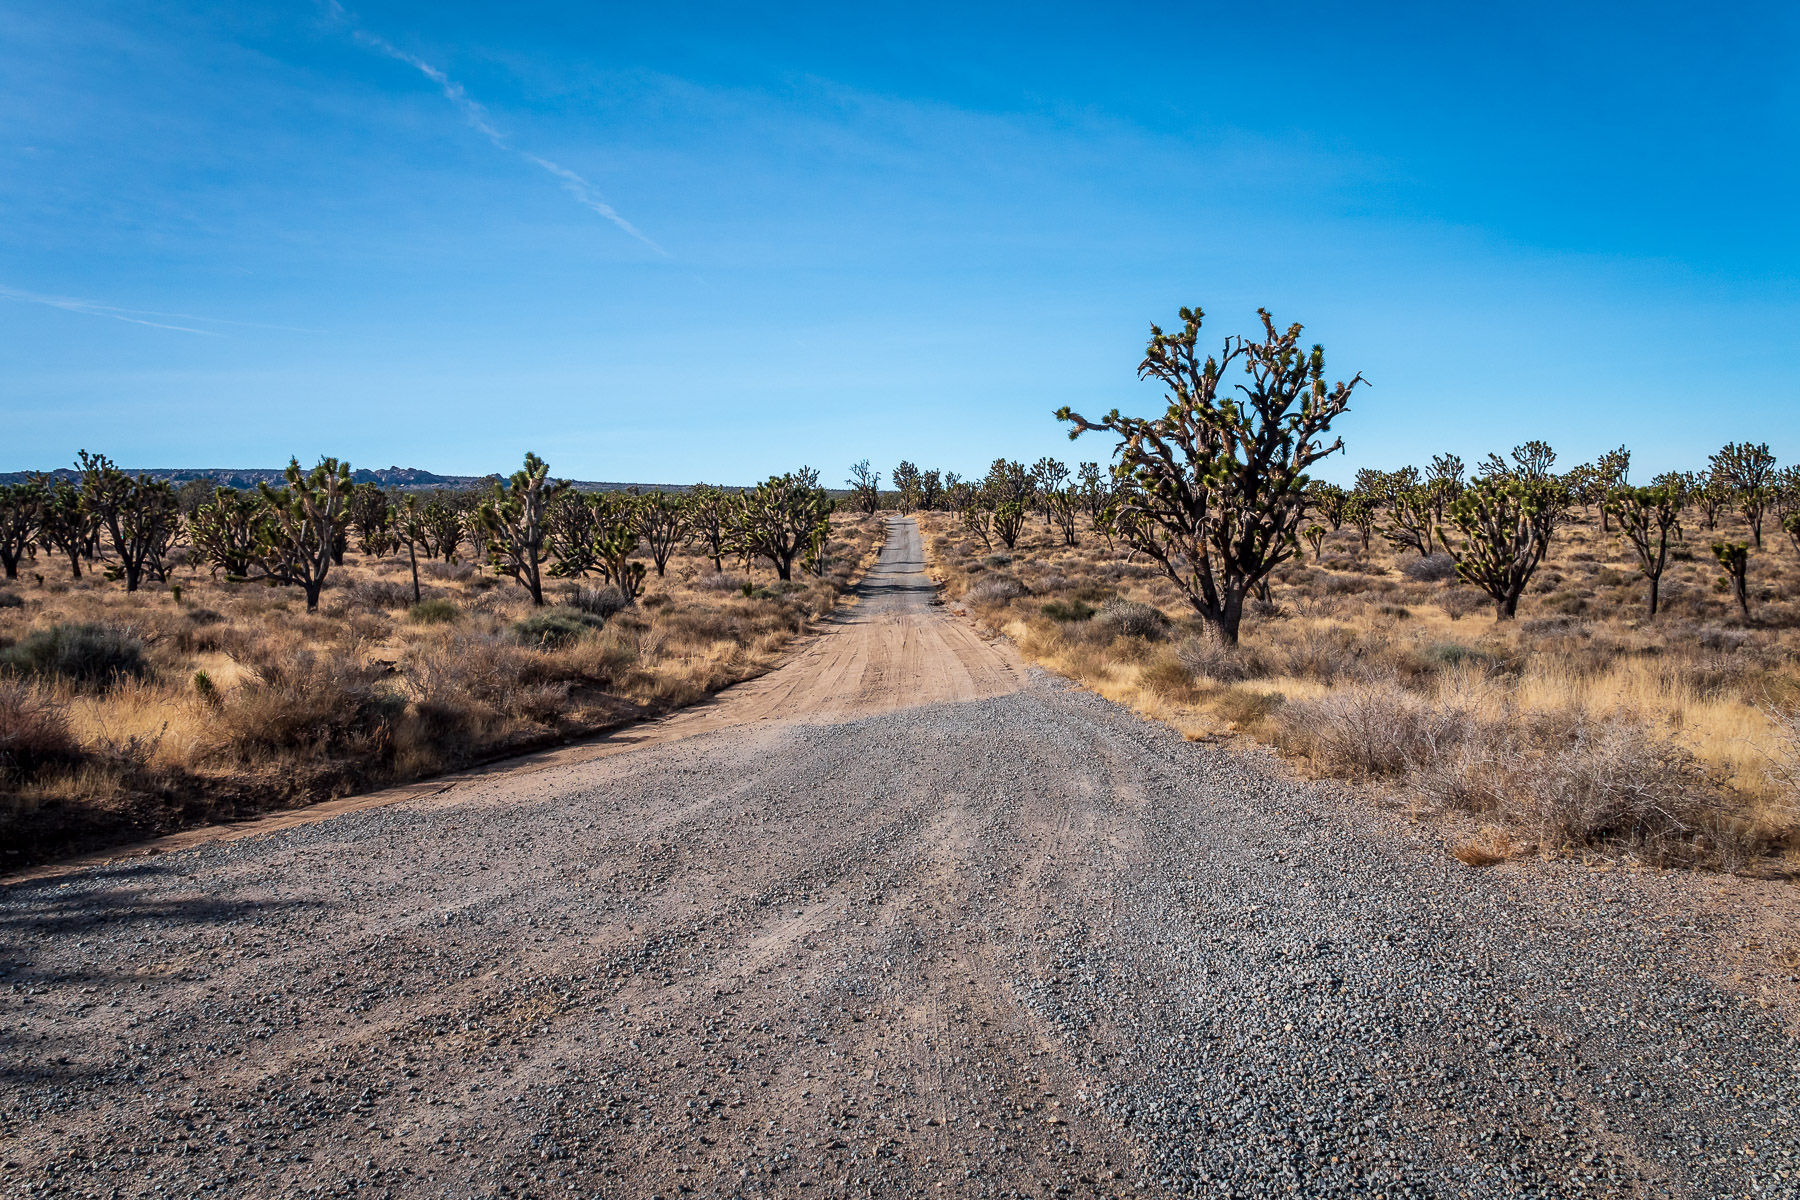 A gravel road leads into the distance through an endless sea of Joshua trees at the Mojave National Preserve, California.